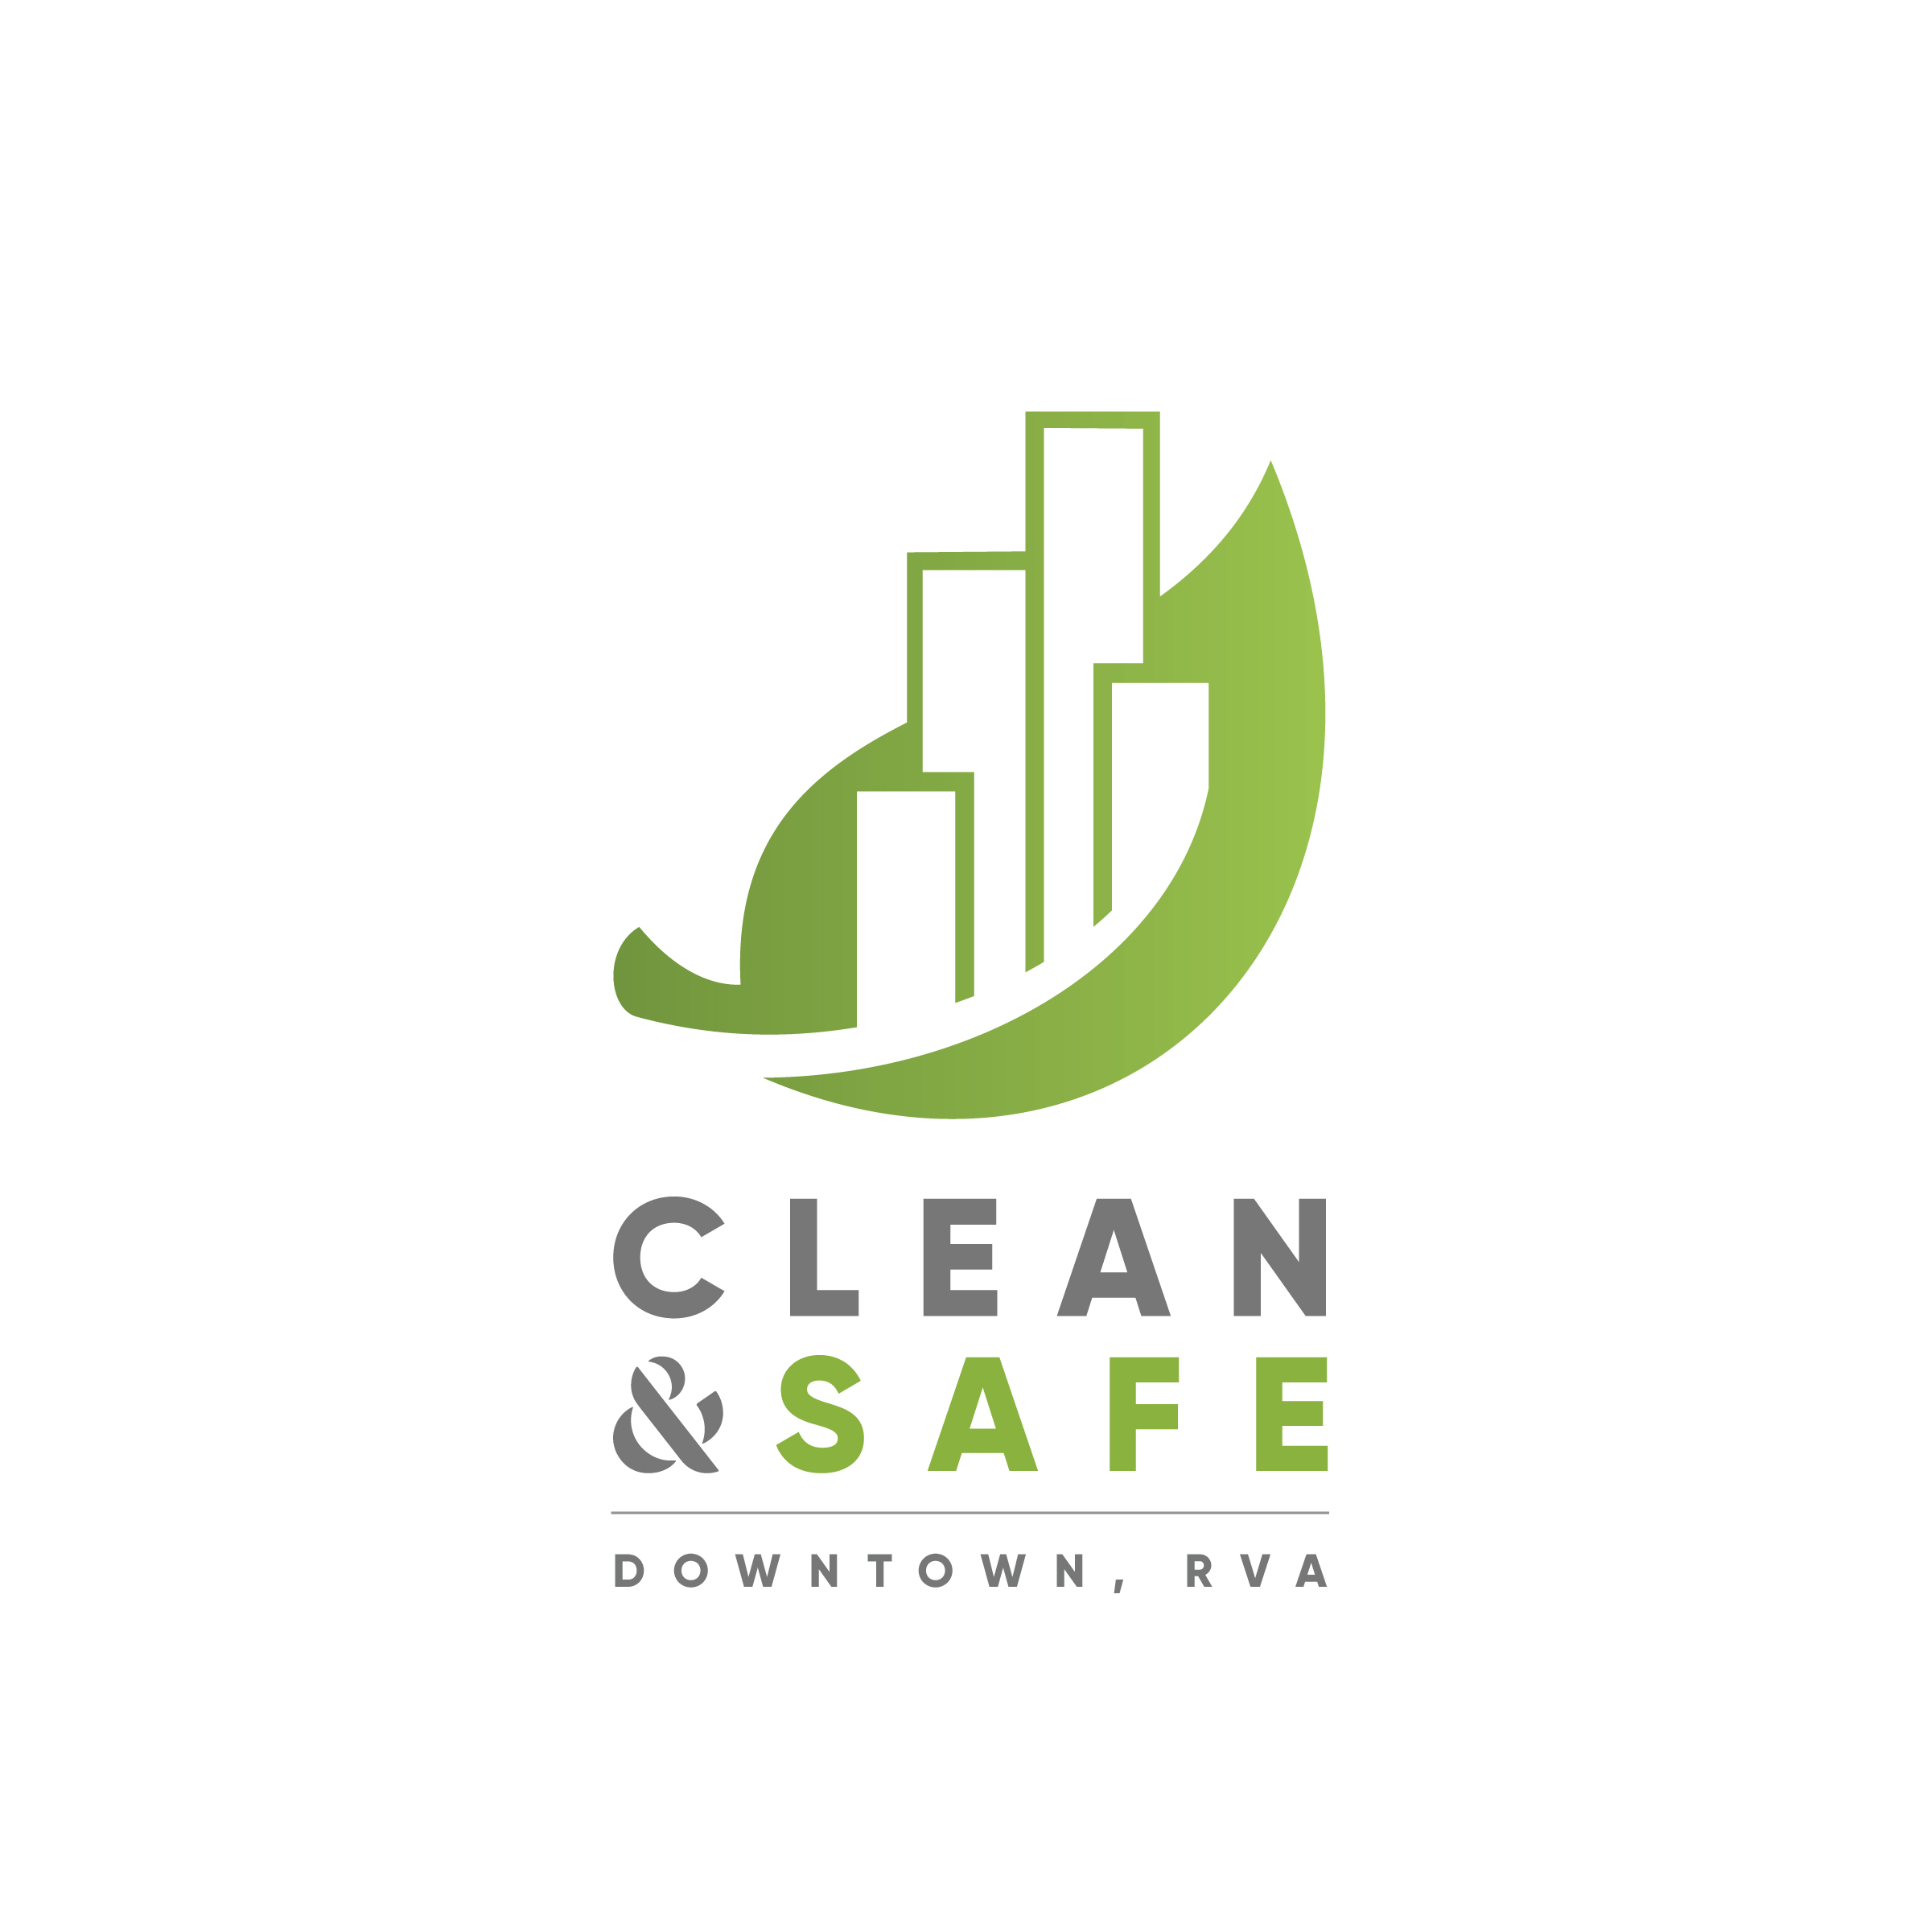 Venture Richmond_Clean & Safe_Logo-01.jpg